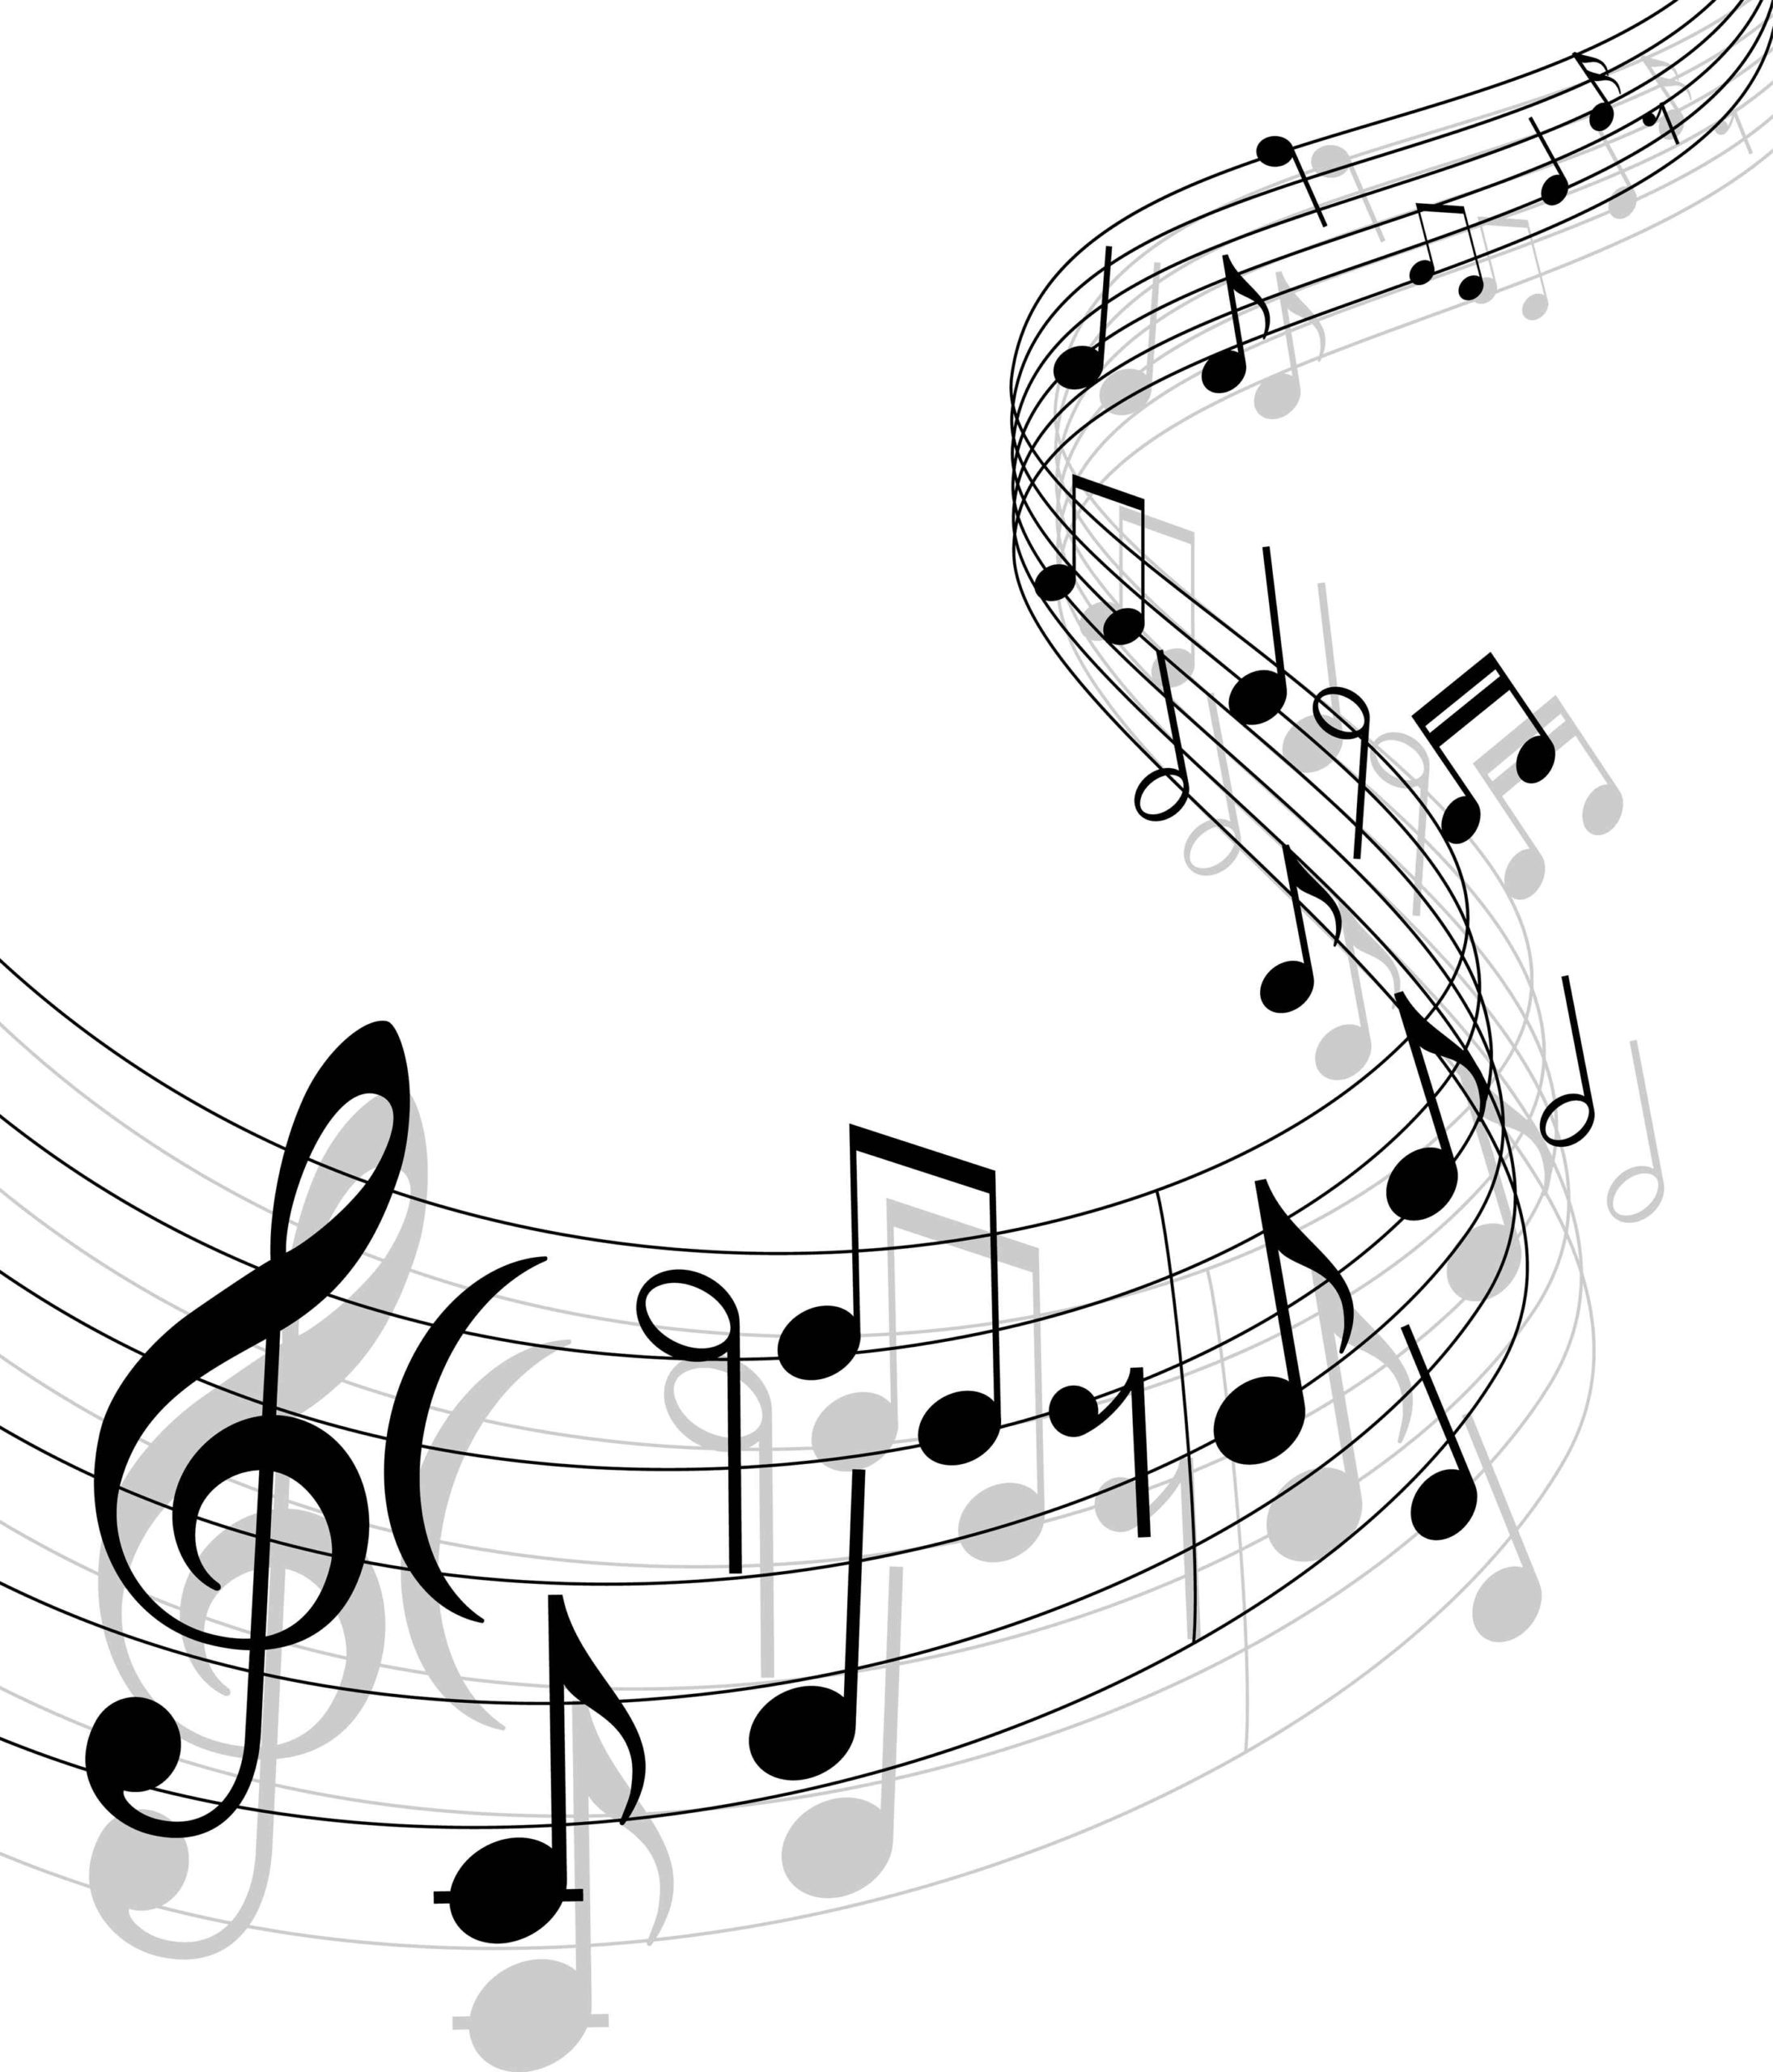 Coloring Book : Music Note Musical Notes Clipart Free Vector.